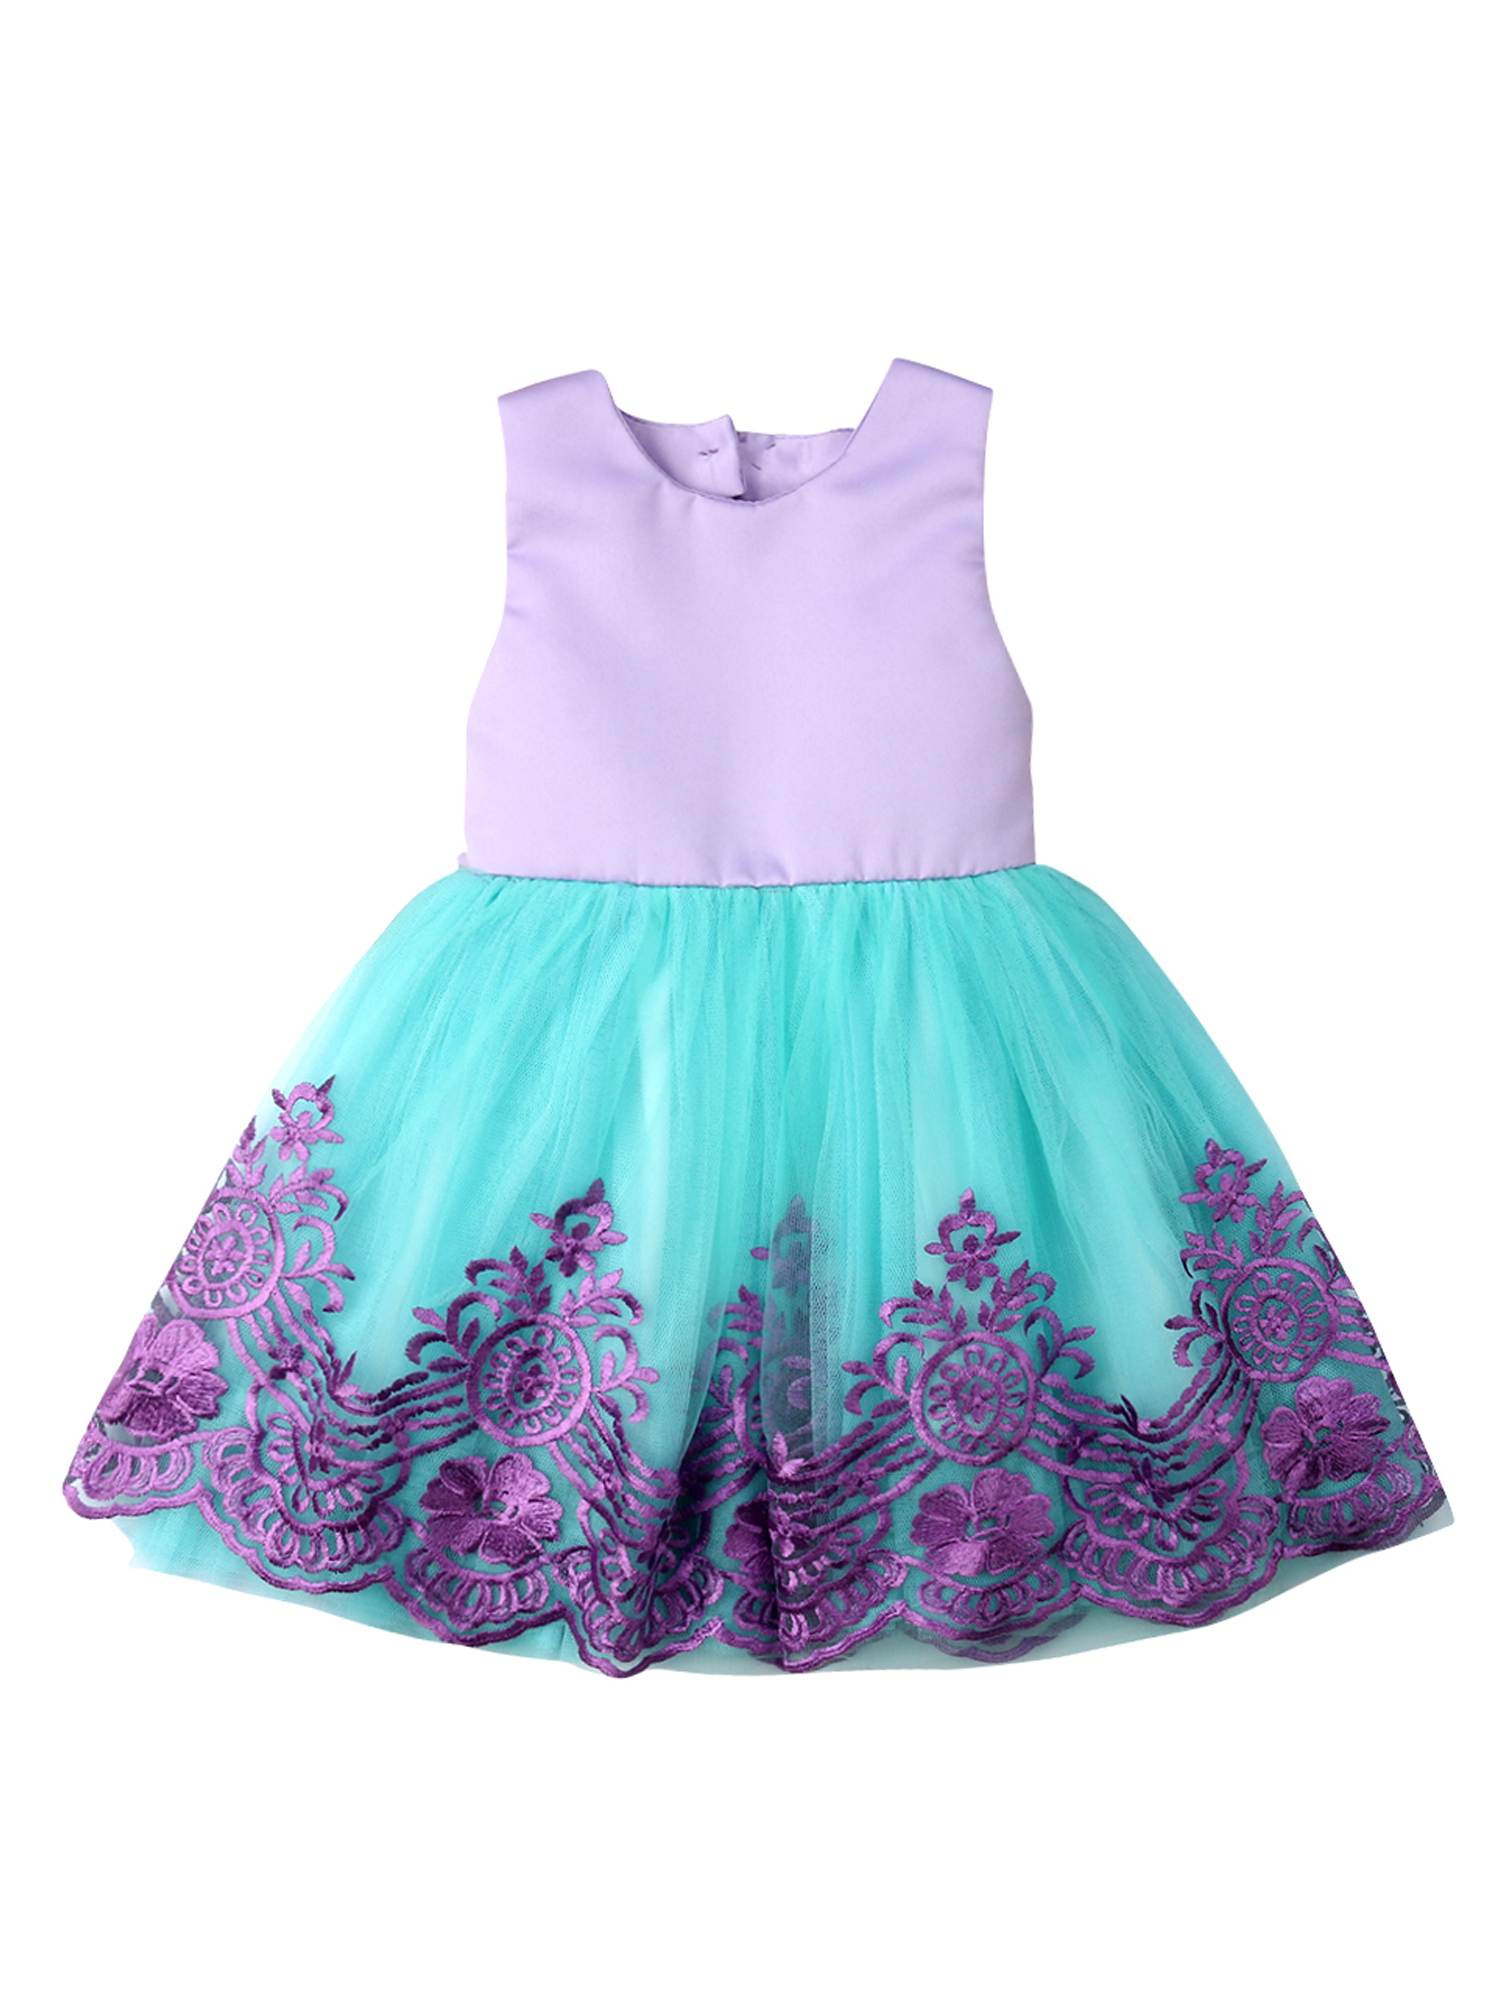 Matoen Toddler Baby Girls Dress Tassels Print Tutu Princess Party Beach Skirt